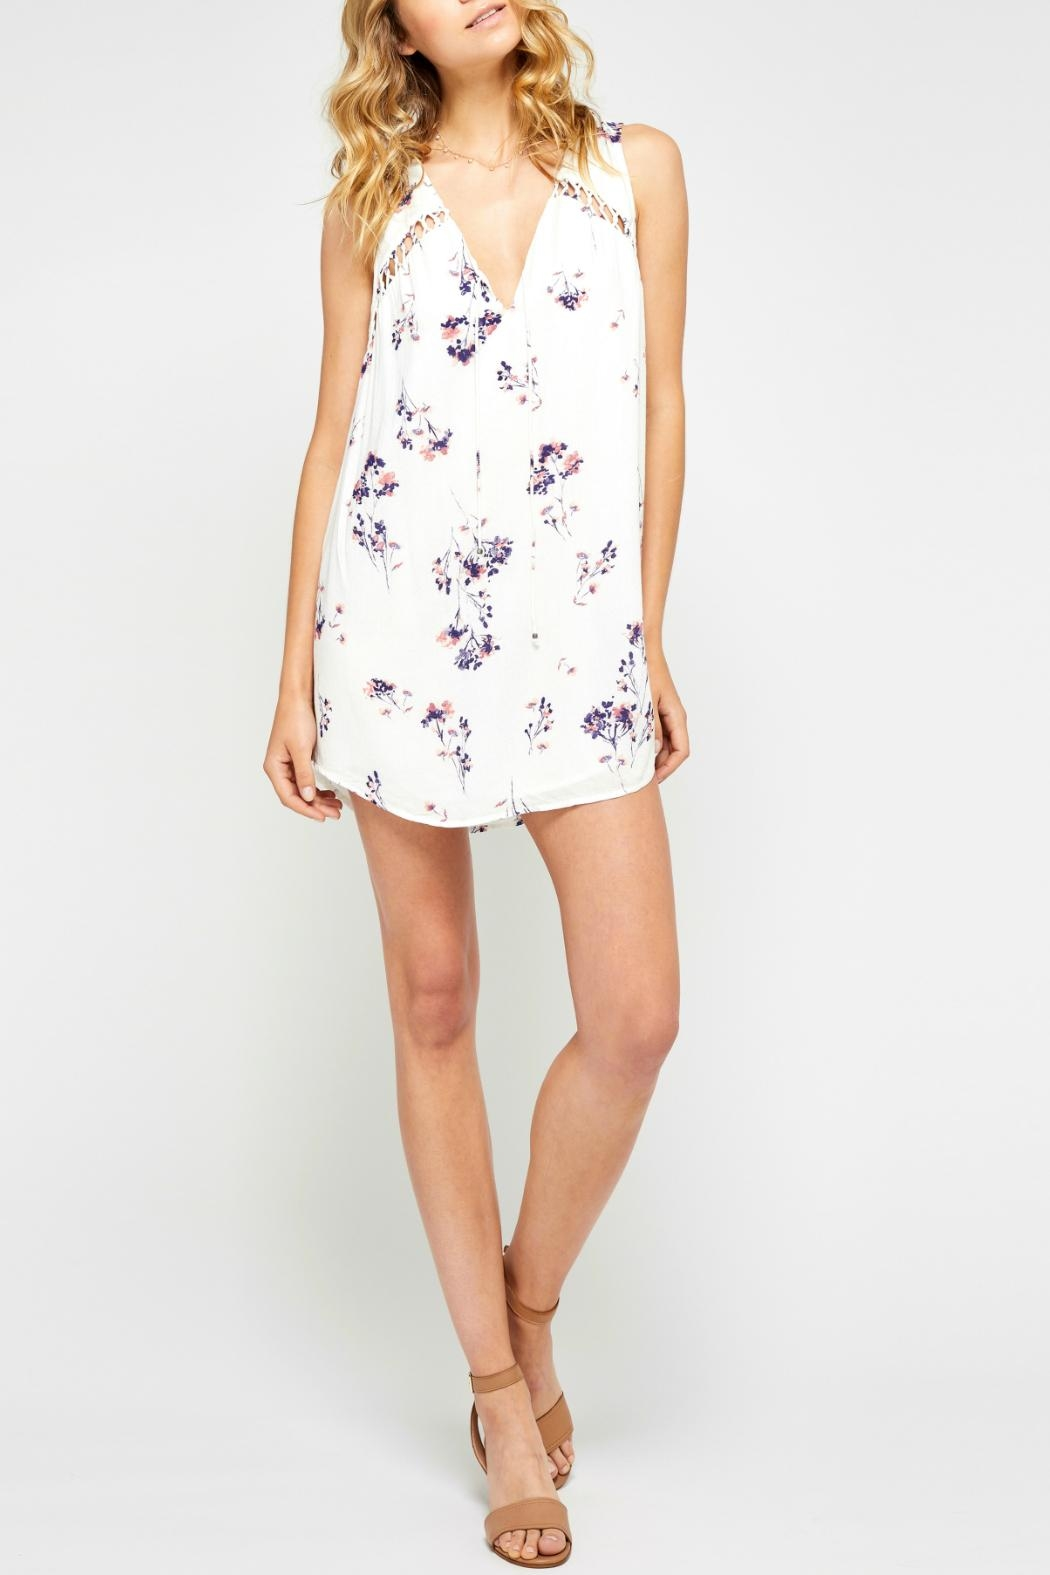 Gentle Fawn Flowy Floral Dress - Front Full Image